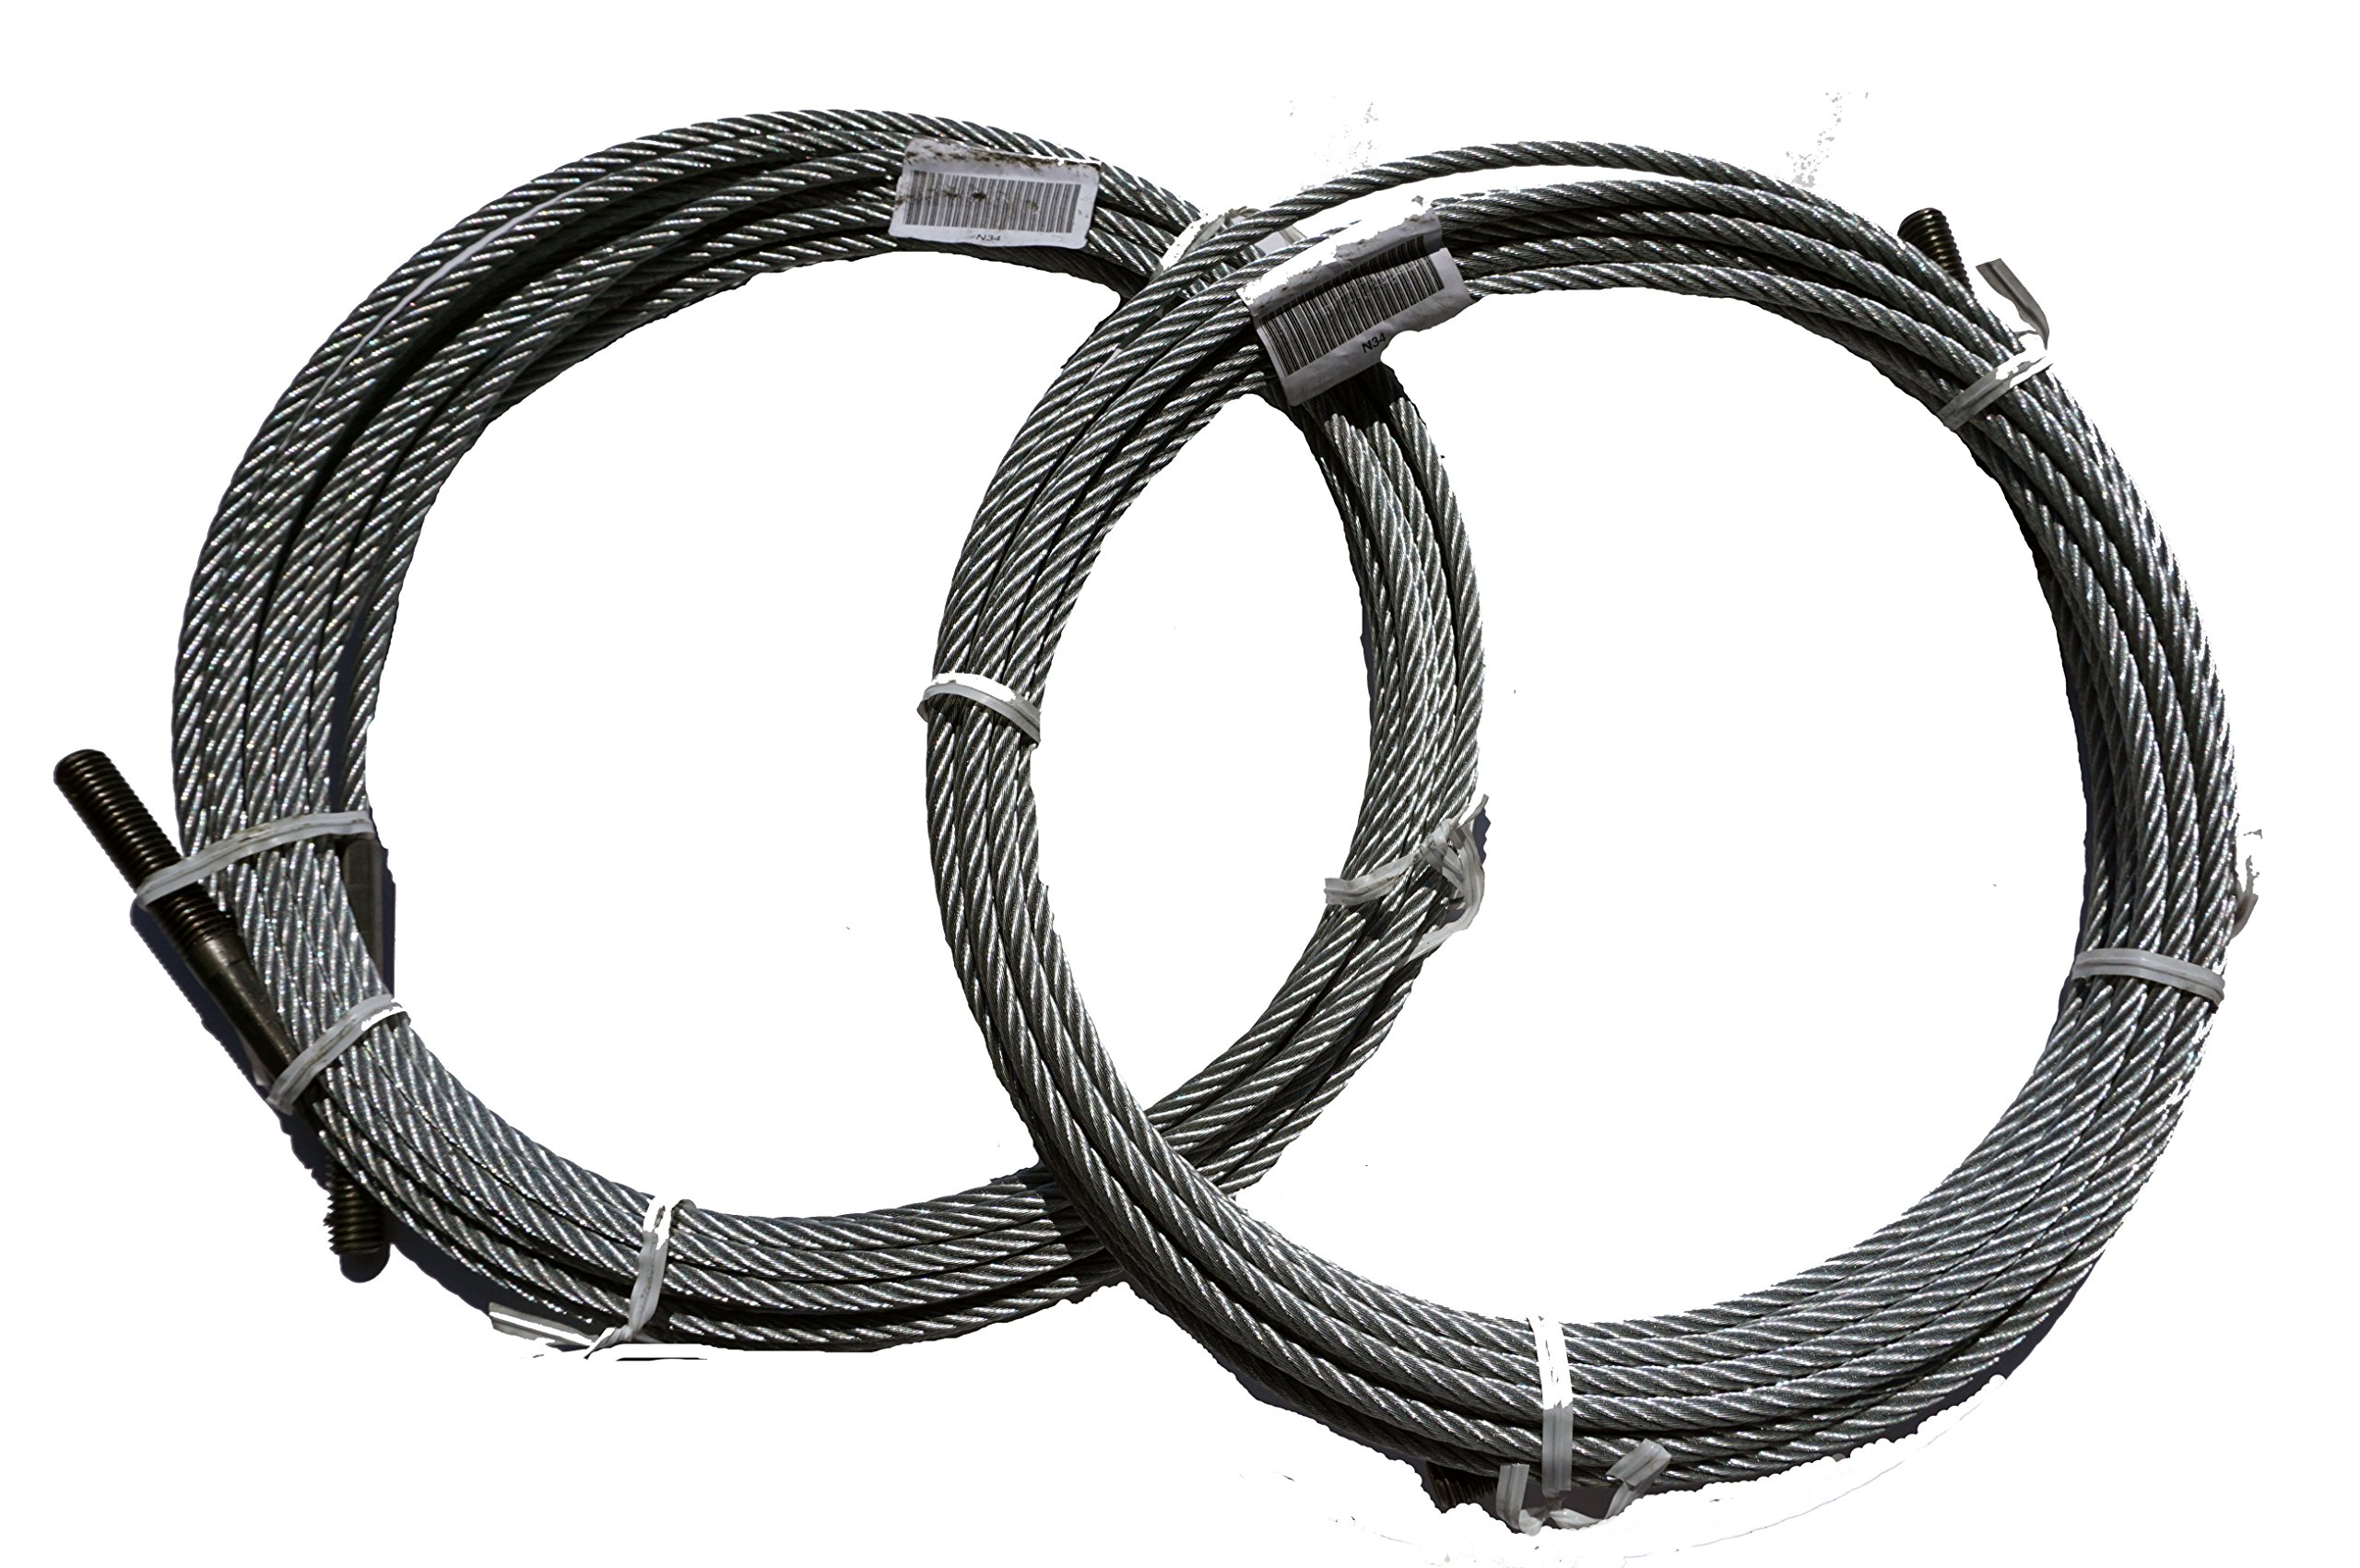 Rotary Lift N34 Equalizer Cable For SPOA9 1' Extended Height Lift -Set of Two (2)